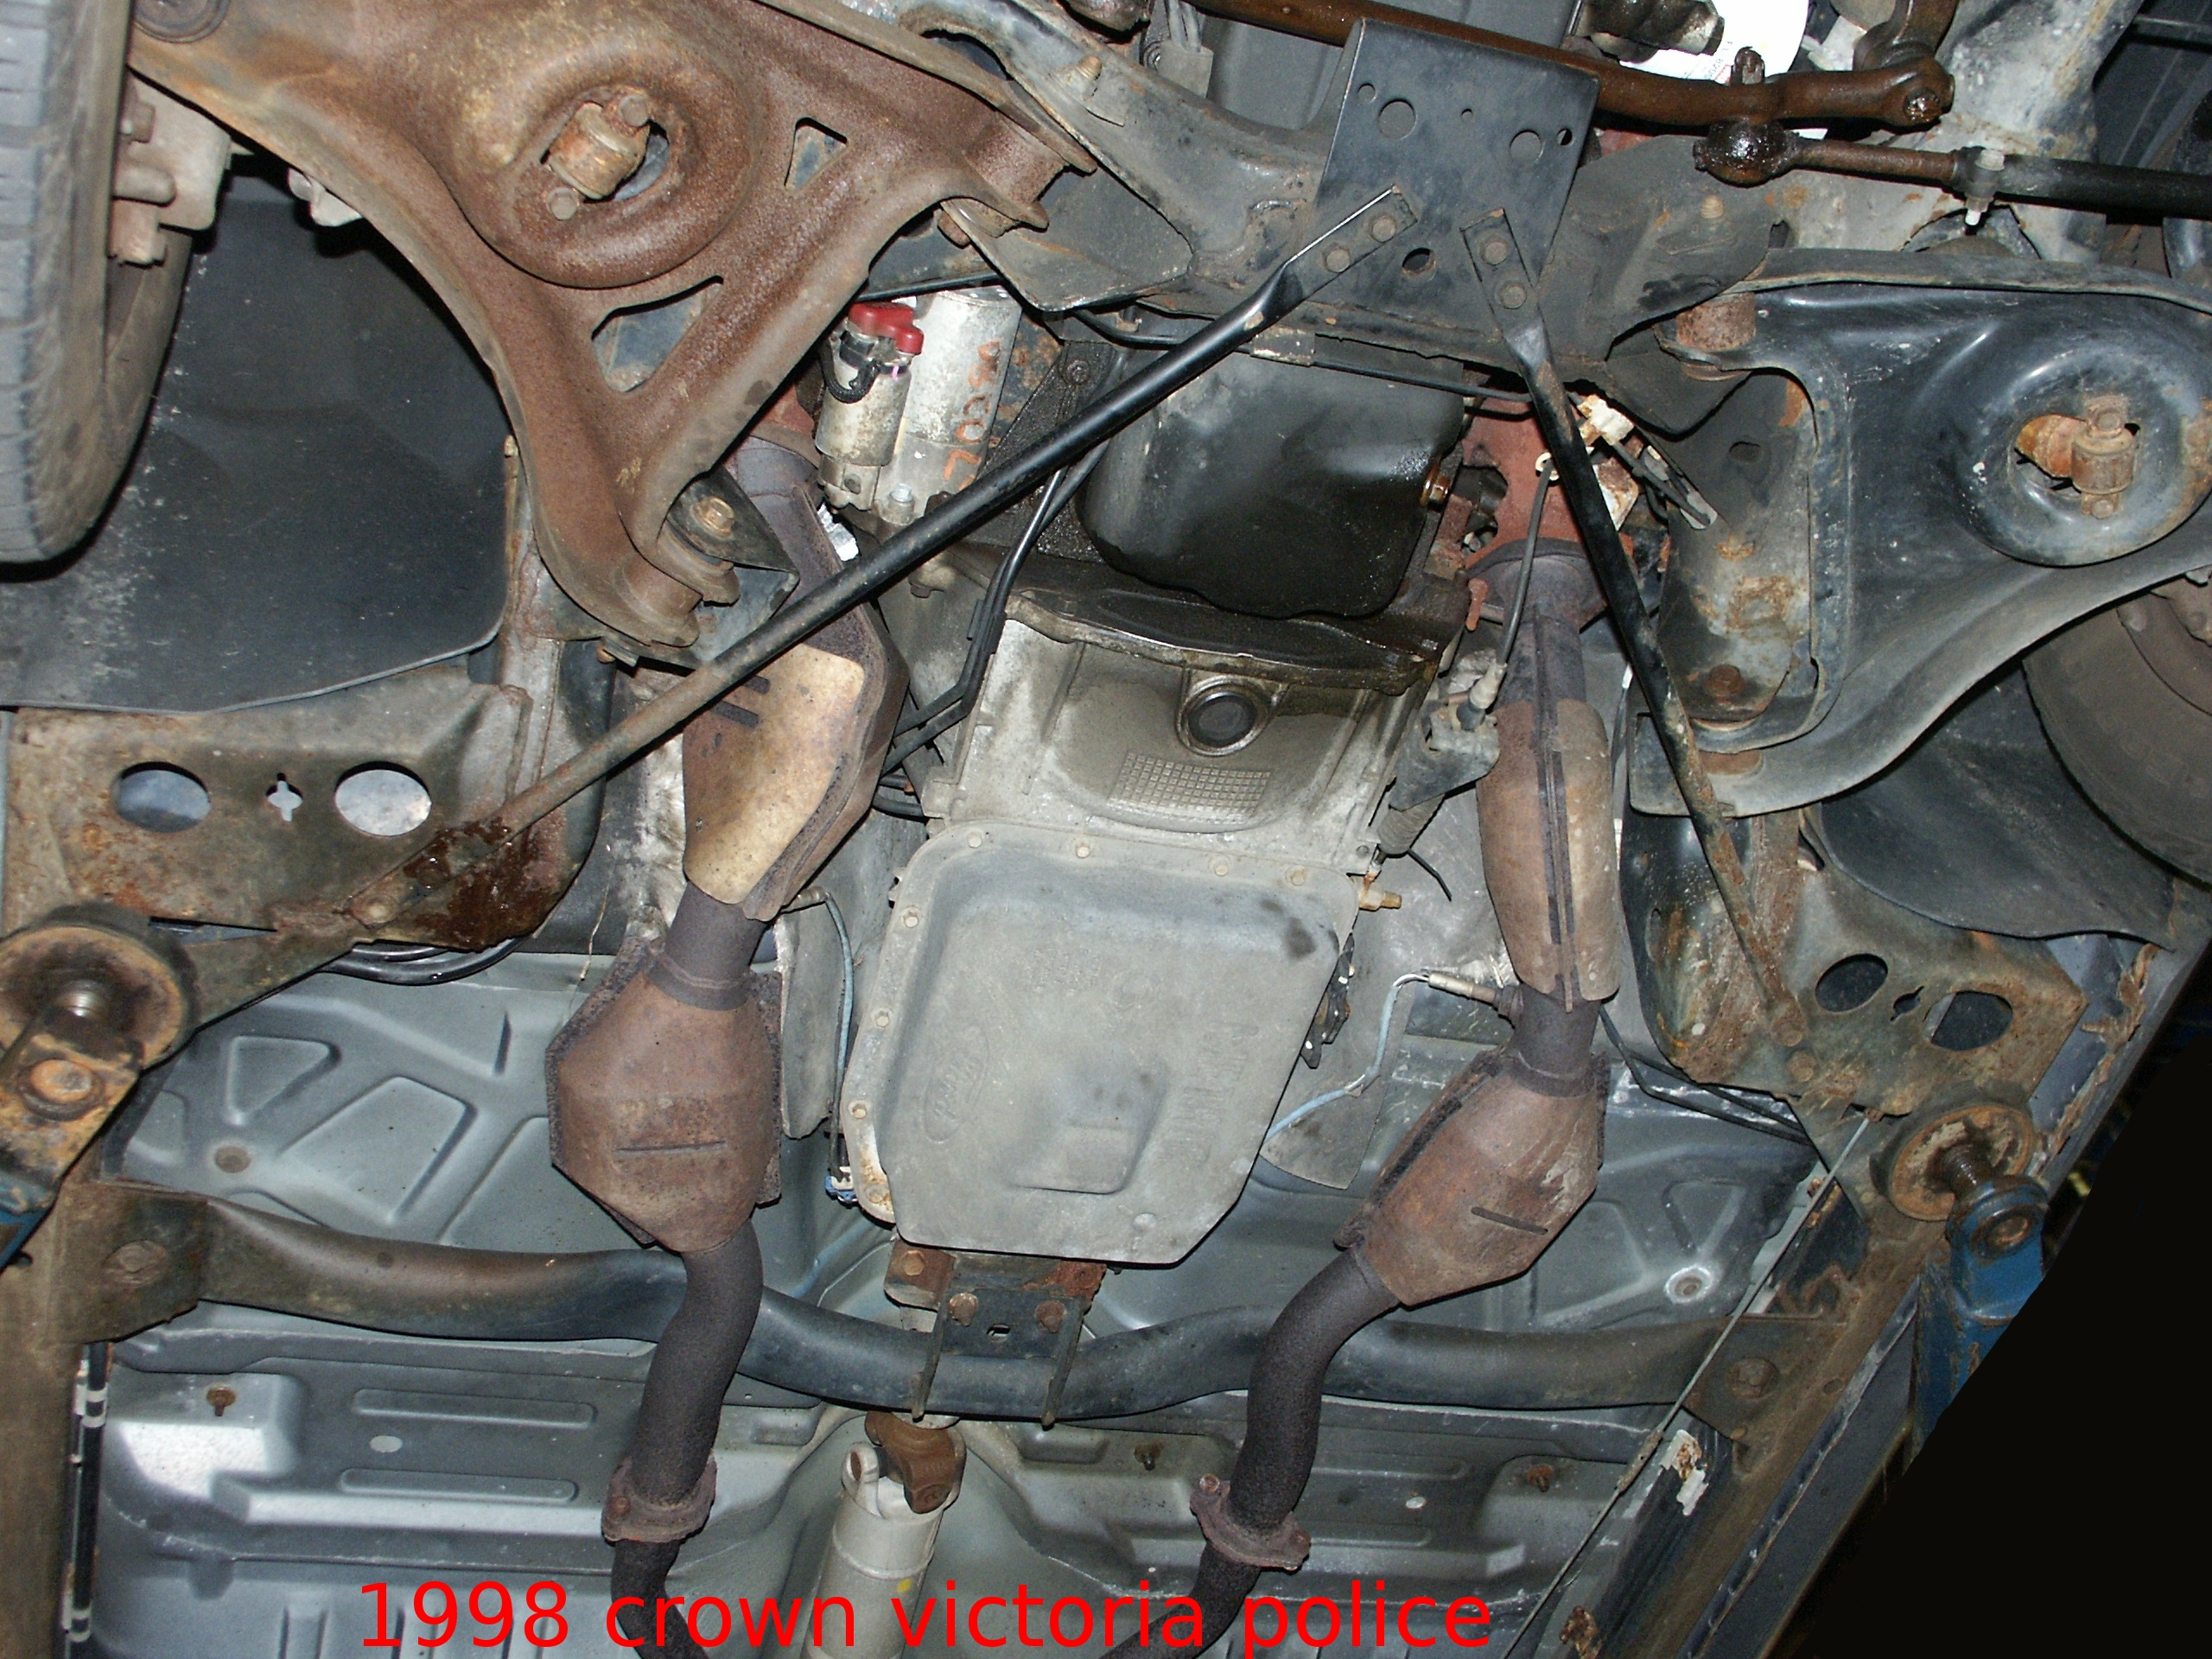 98 grand marquis engine diagram wiring diagram Pontiac Vibe Wiring-Diagram 98 mercury grand marquis engine diagram wiring library98 grand marquis engine diagram 20